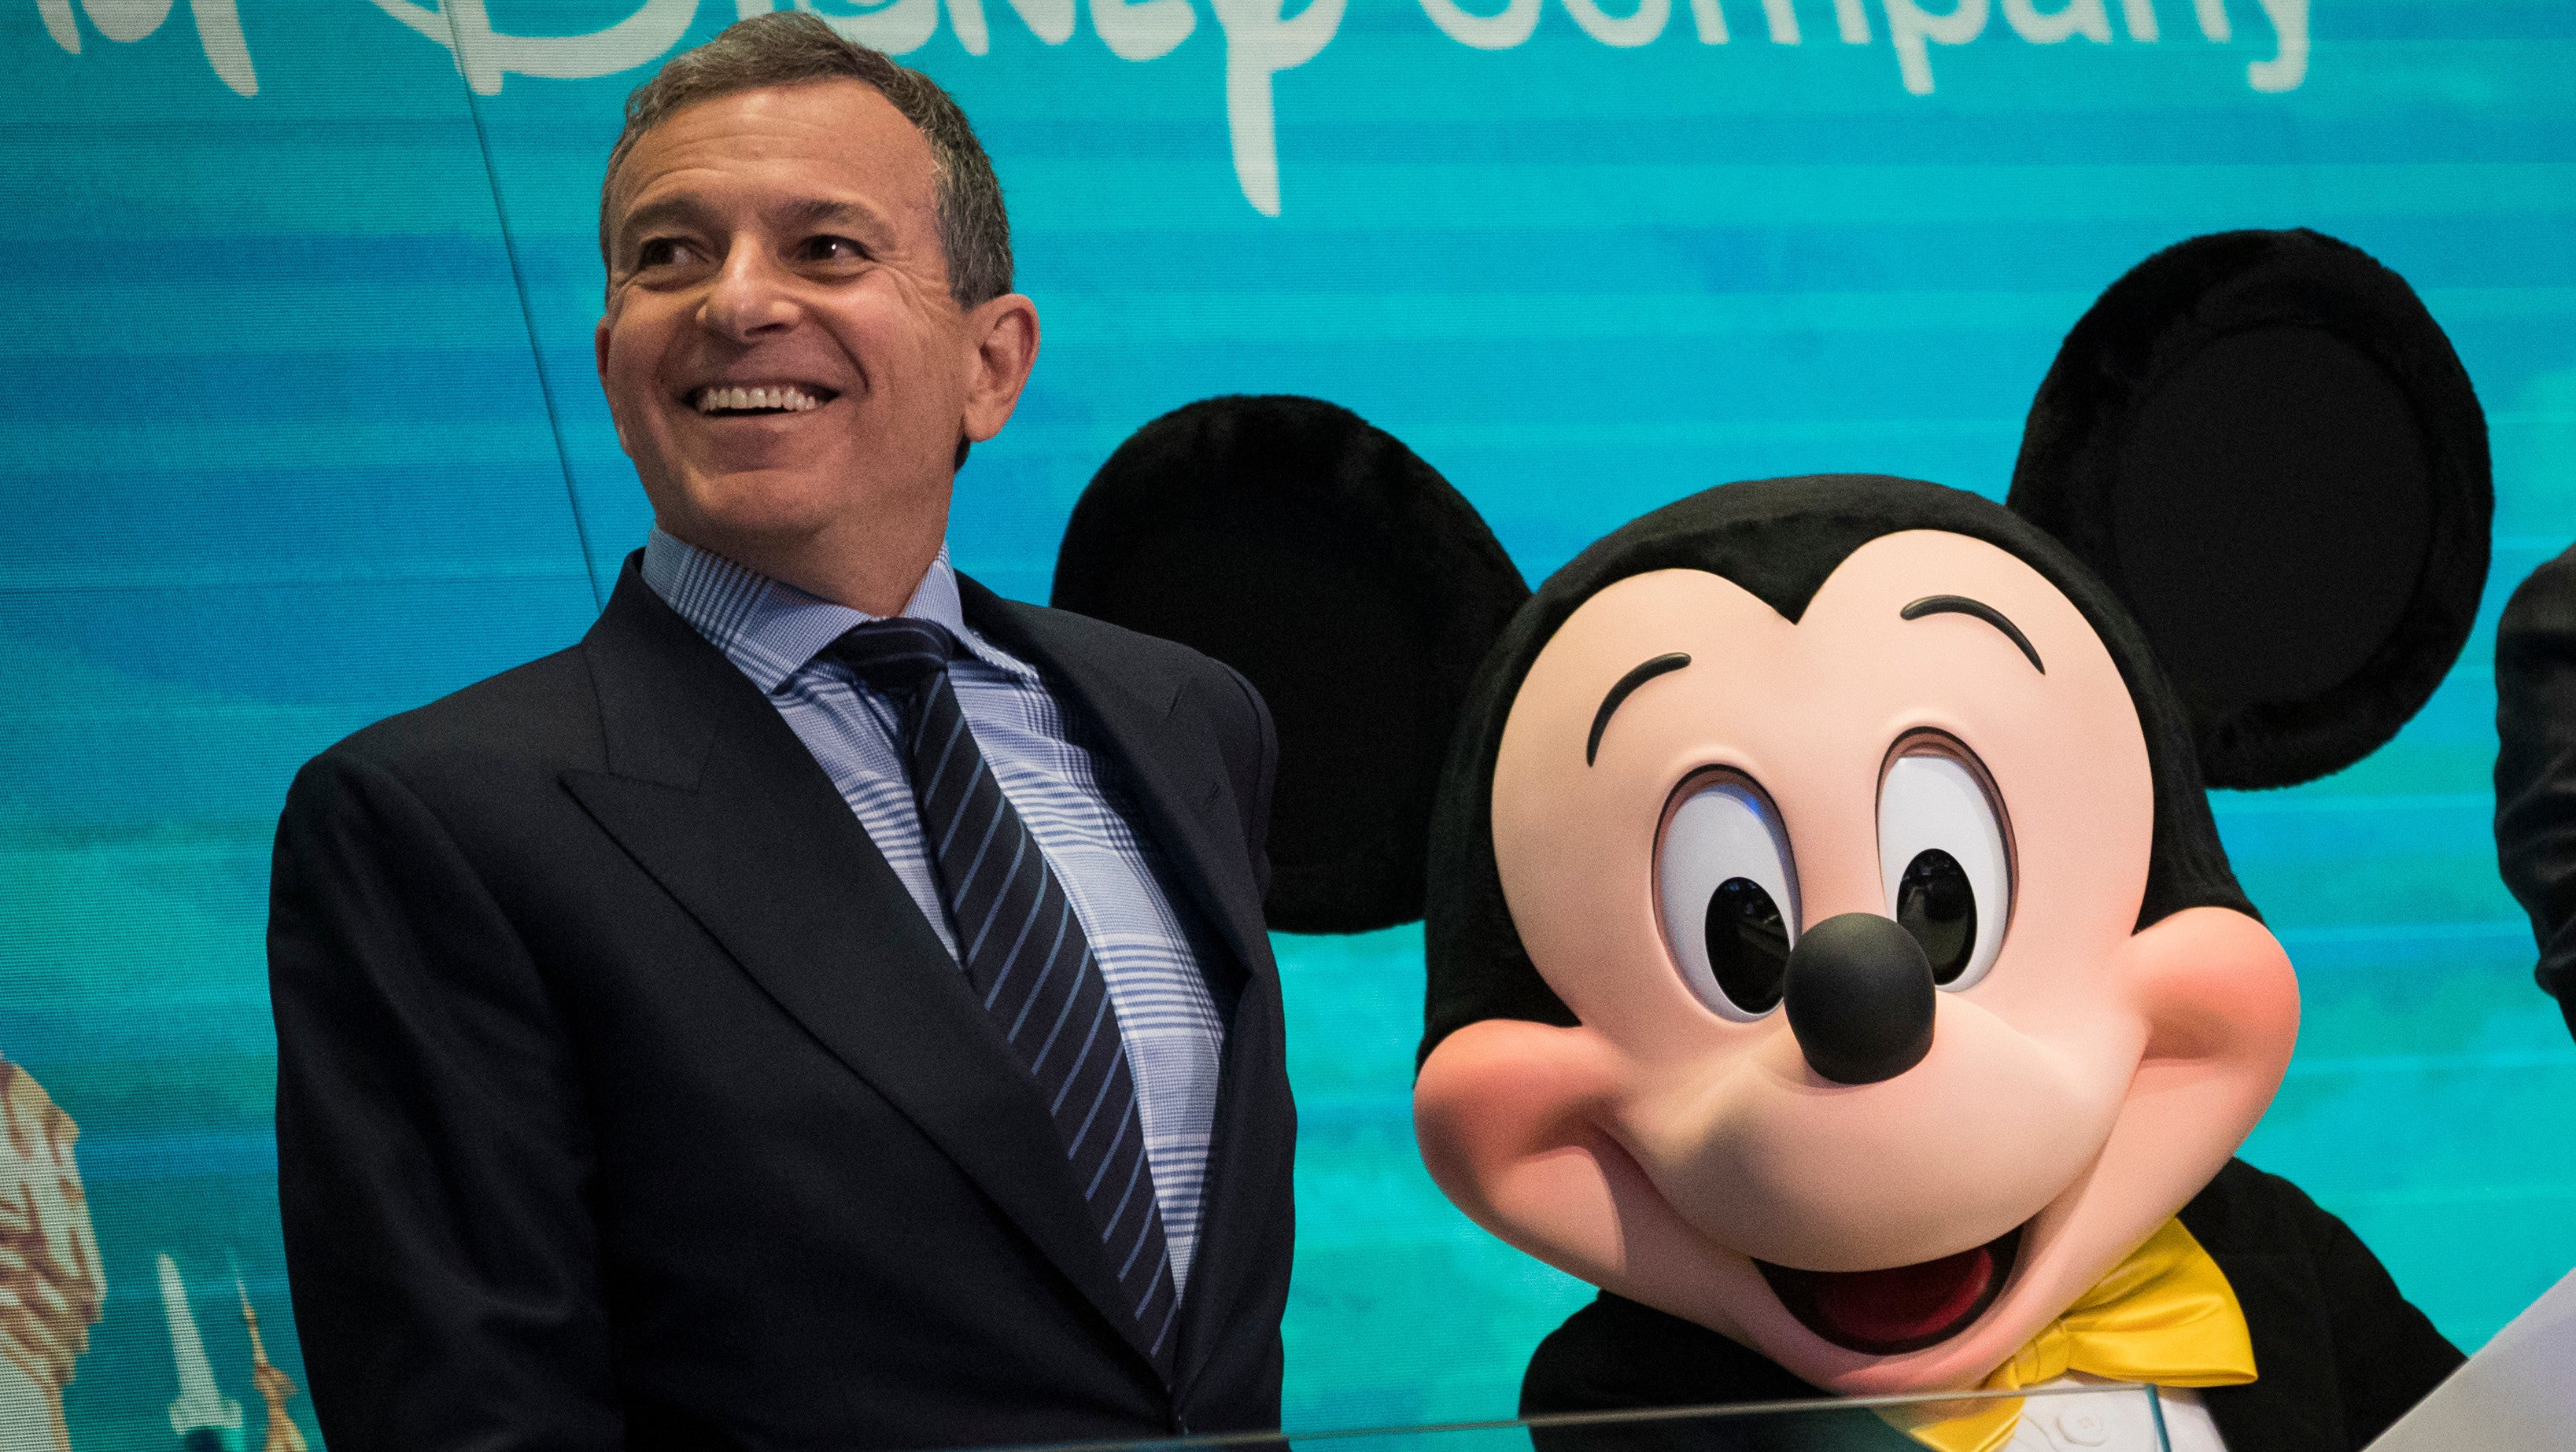 It's Official, Disney Takes Over Hulu